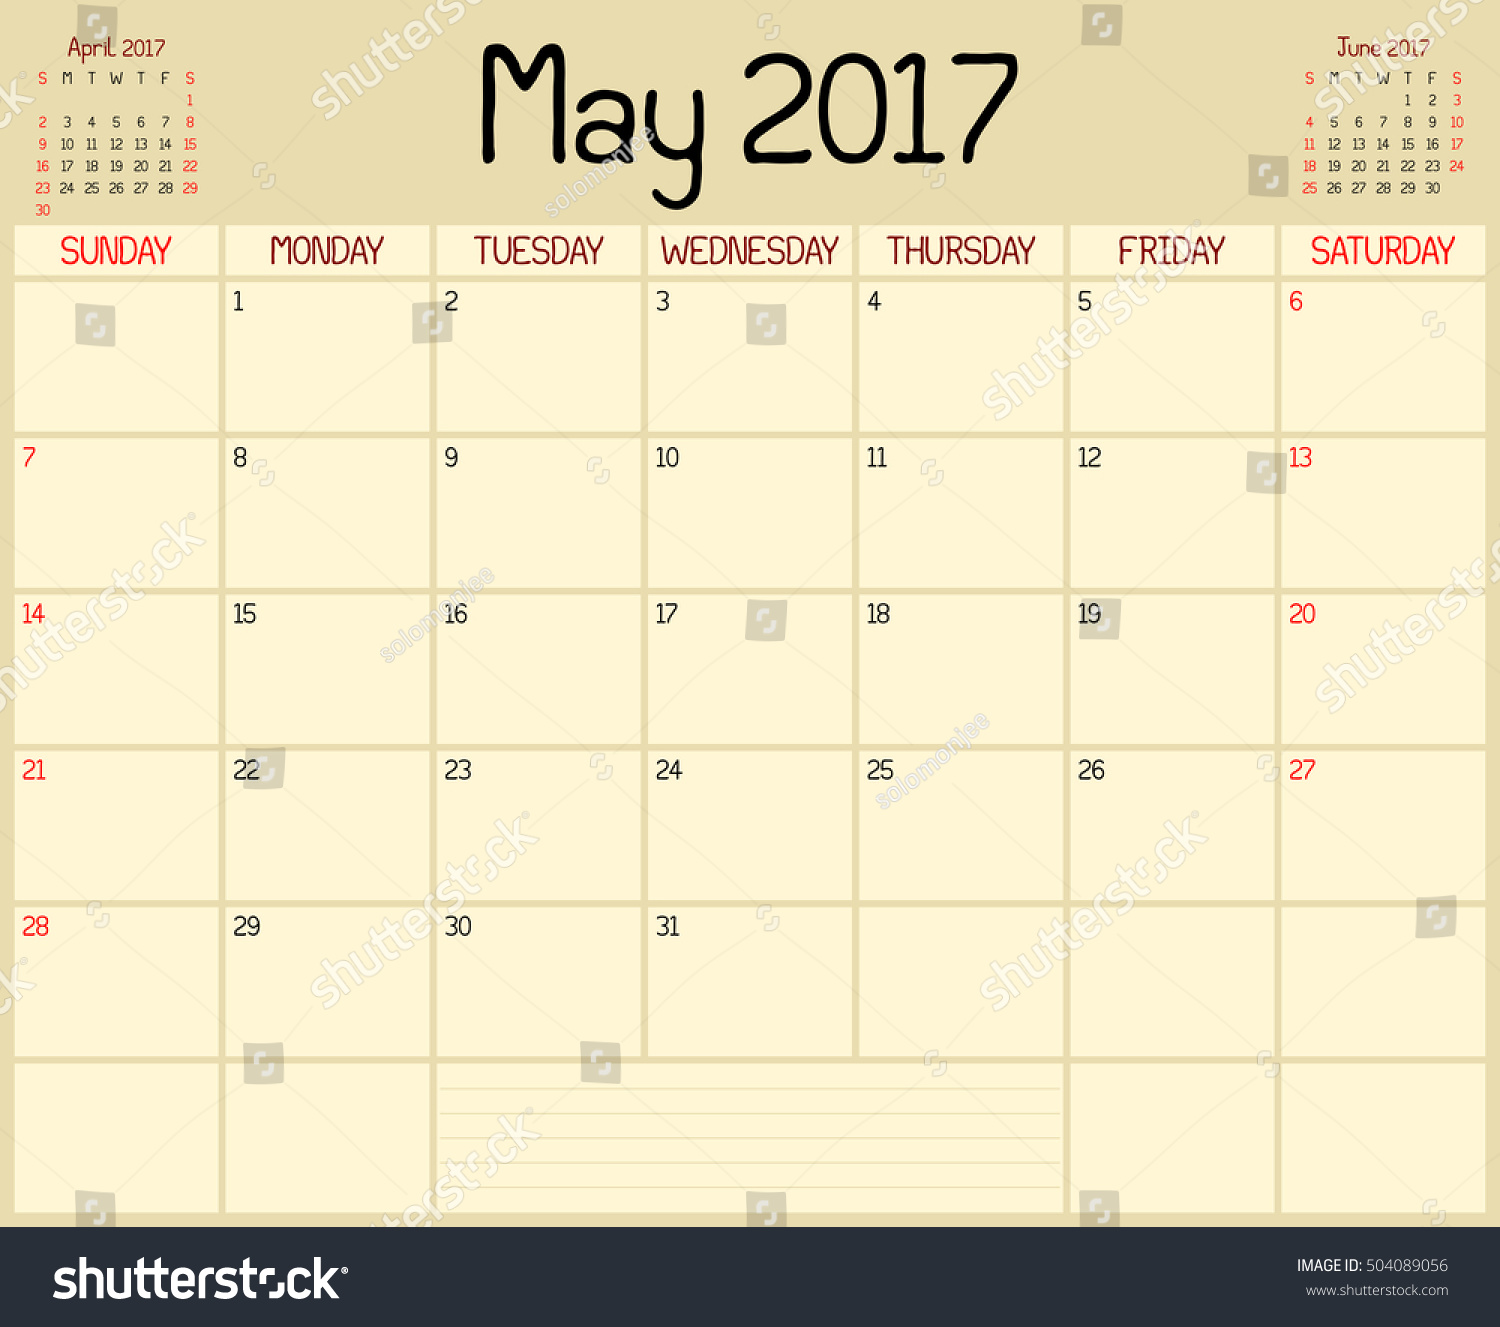 Calendar Planner May : Year may planner monthly stock illustration